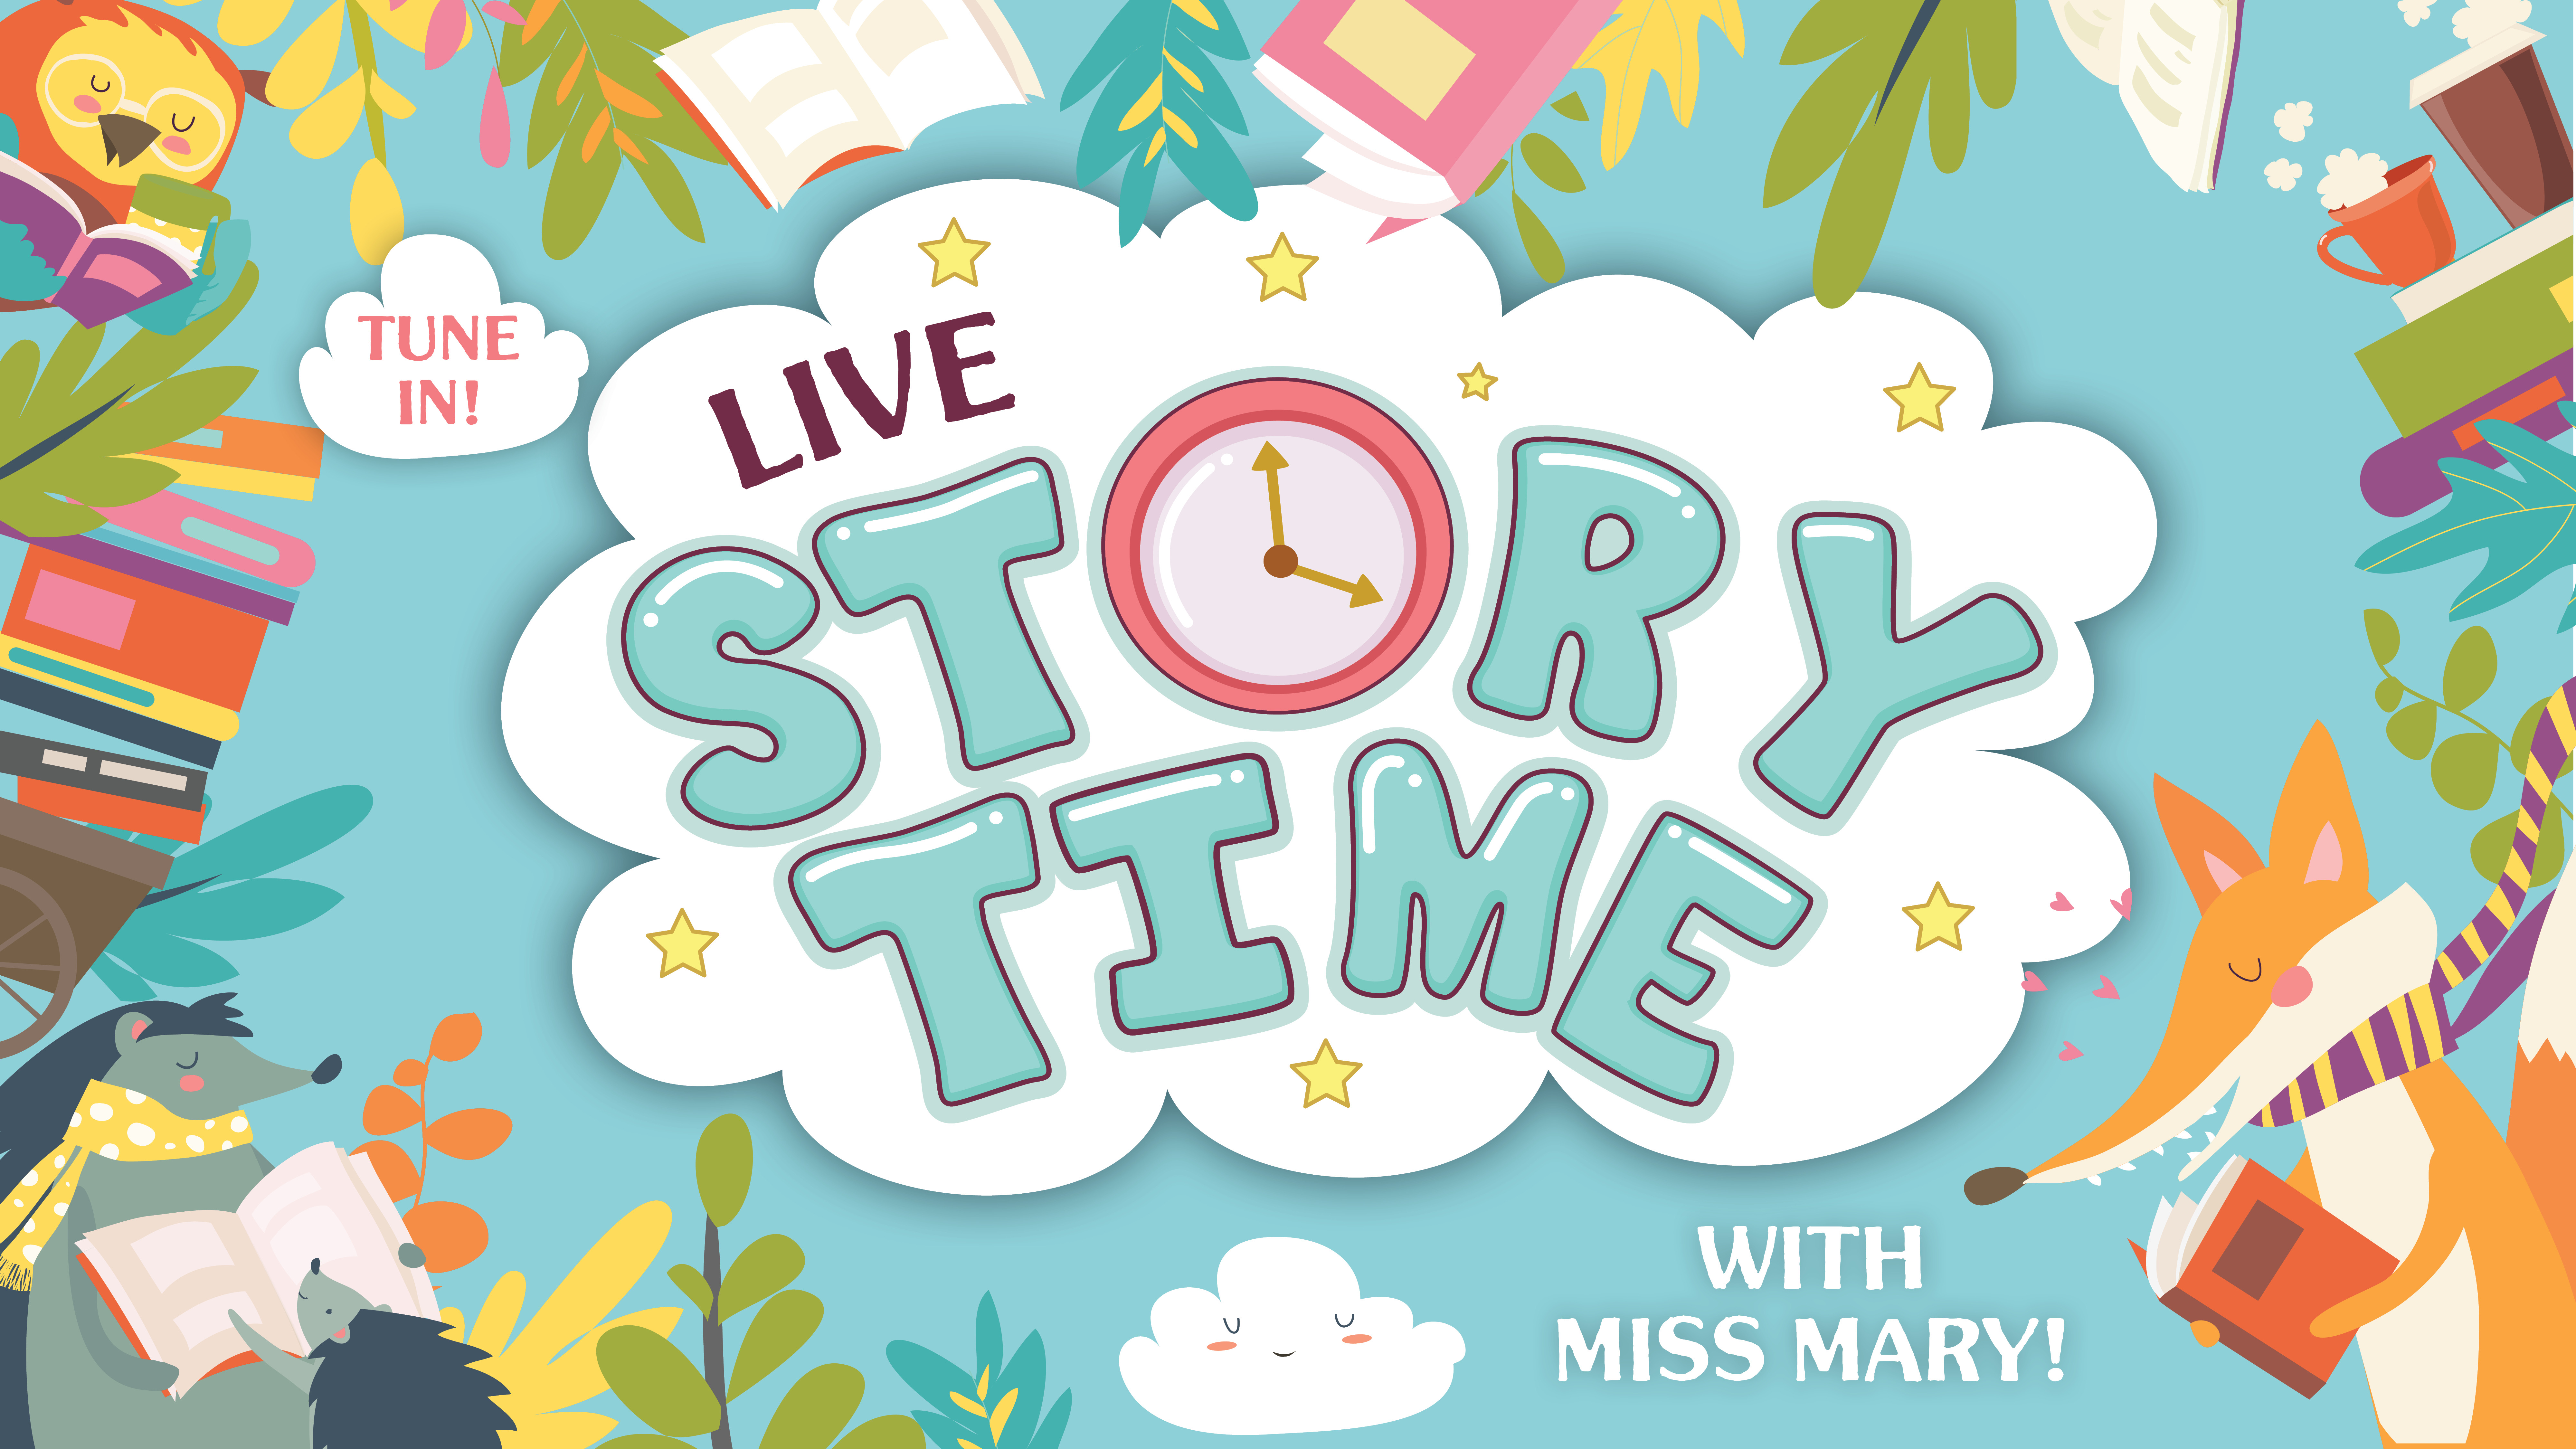 ONLINE Facebook Live Storytime With Miss Mary! at Patchogue-Medford Library